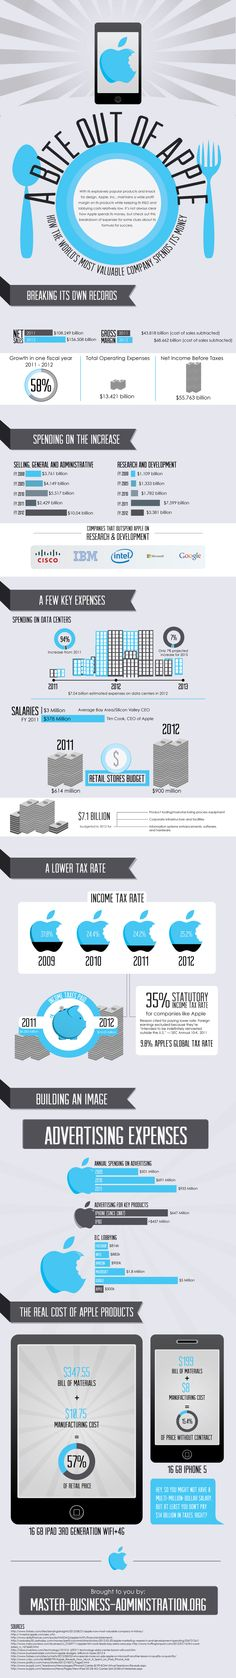 A Bite Out of Apple: How the World's Most Valuable Company Spends Its Money